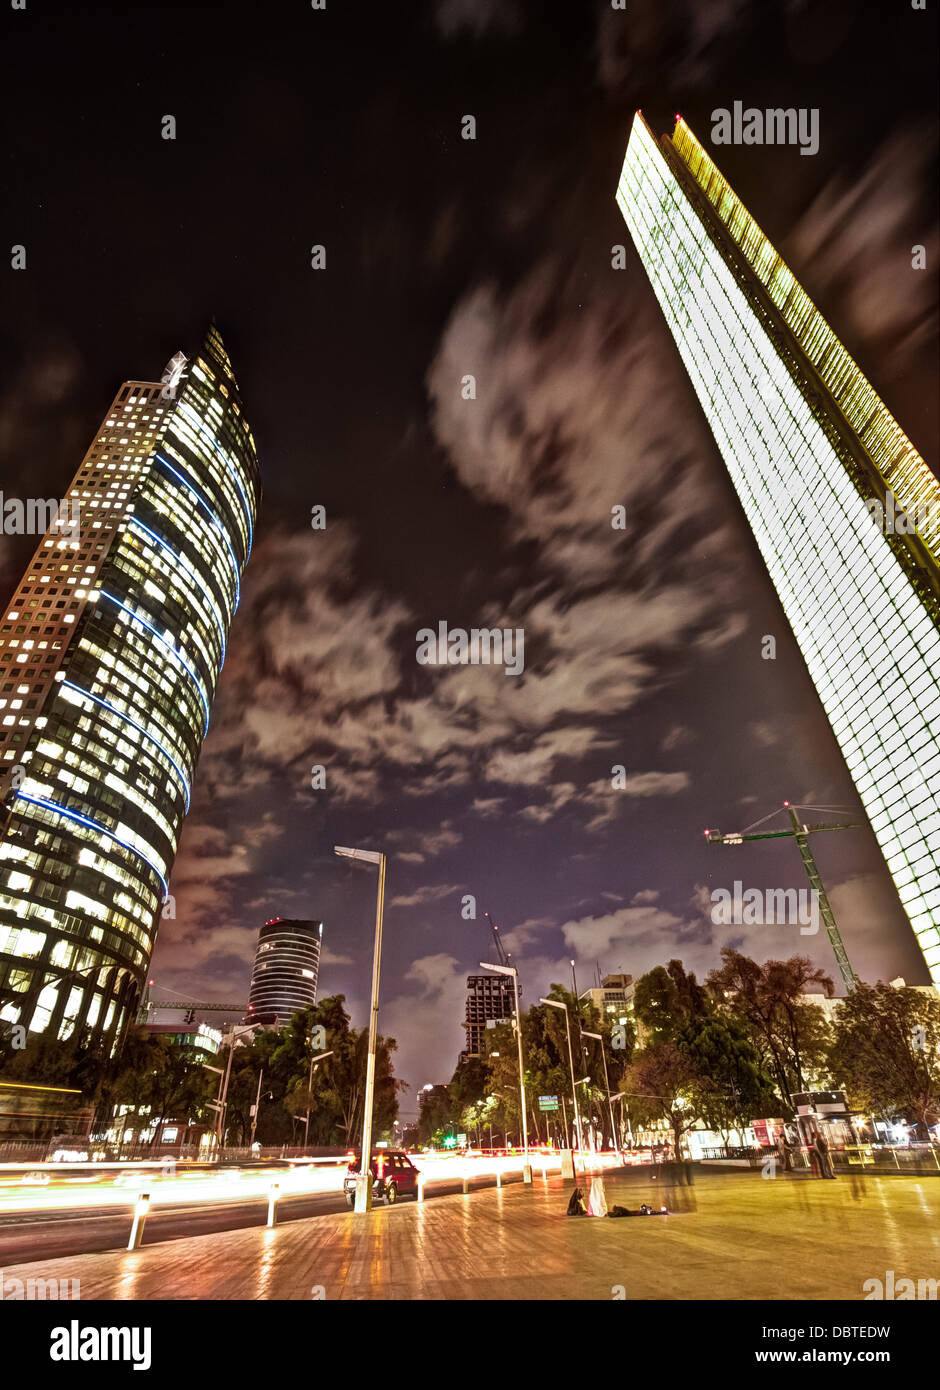 Picture taken in Mexico City - Stock Image